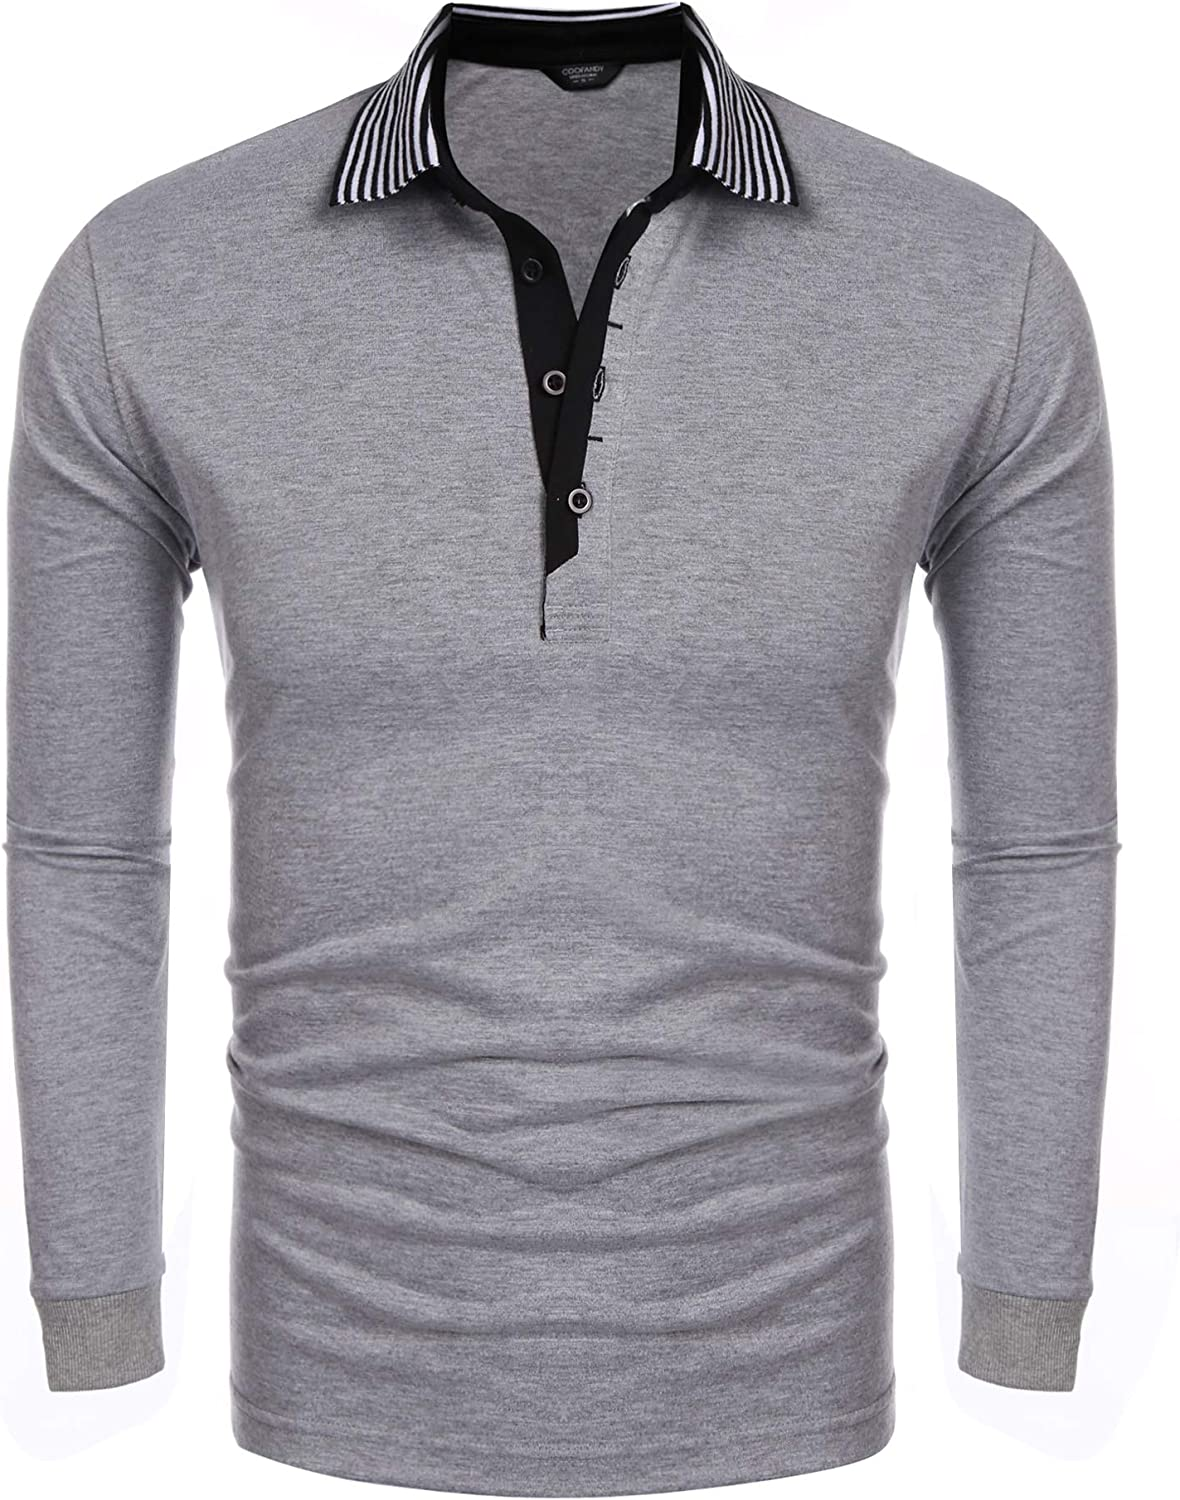 COOFANDY Men's Long Sleeve Polo Shirt Striped Collar Casual Slim Fit Cotton Polo T Shirts